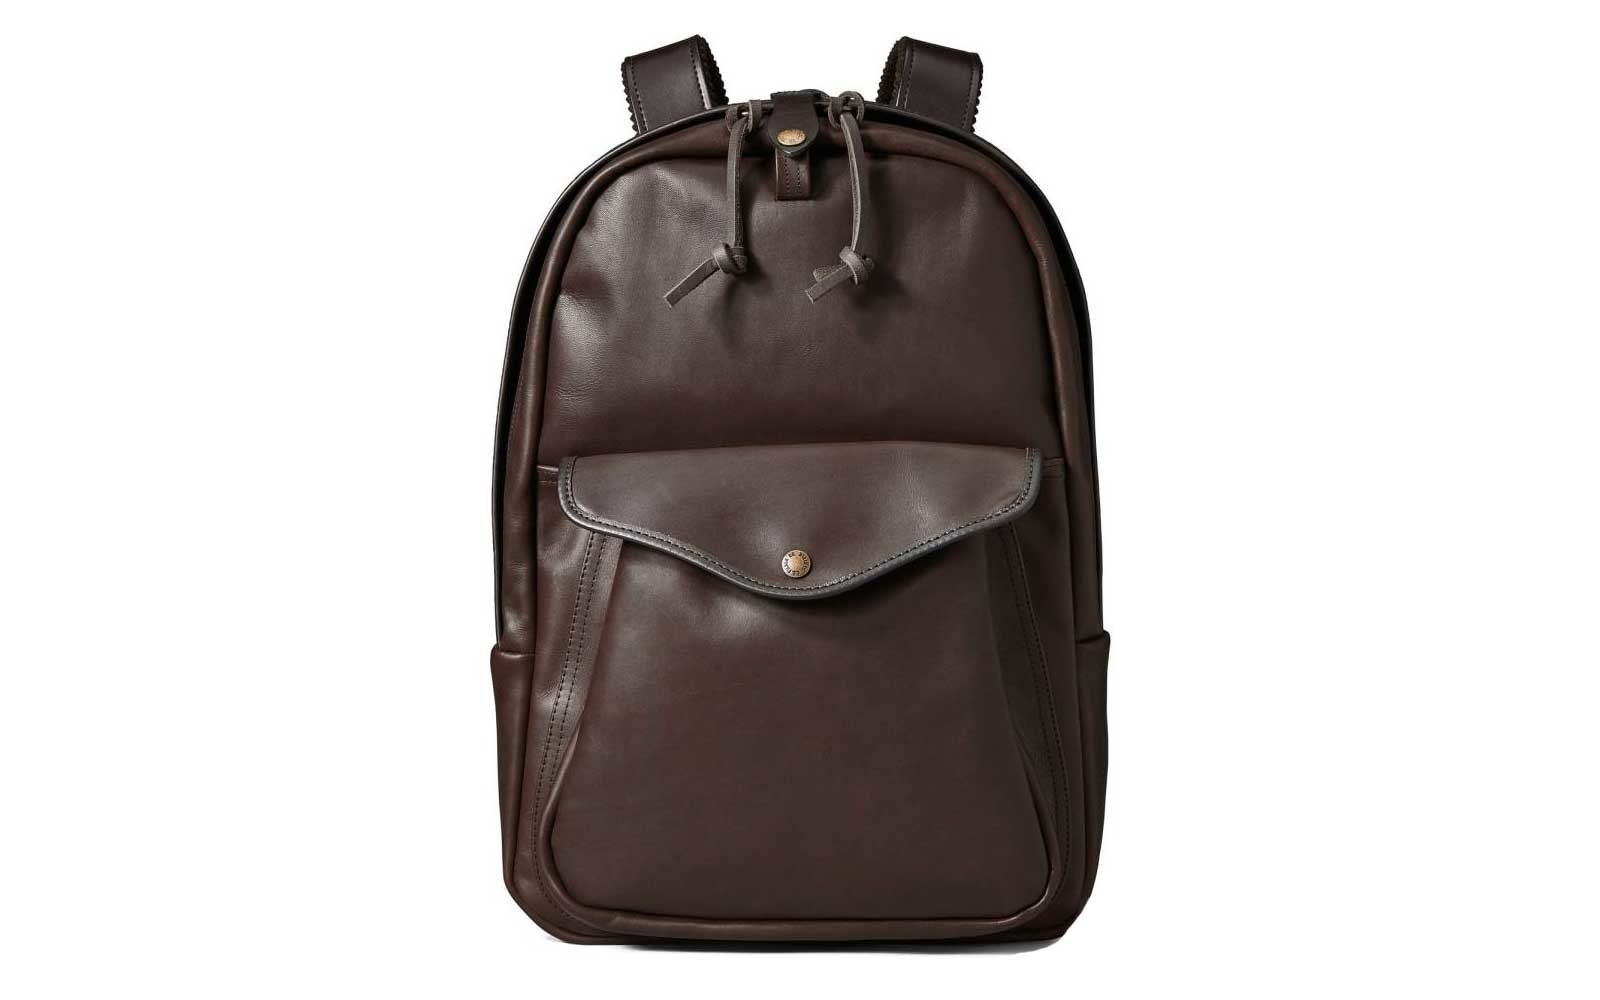 69fd5dff86 Water-repellent Leather  Filson. Leather backpack